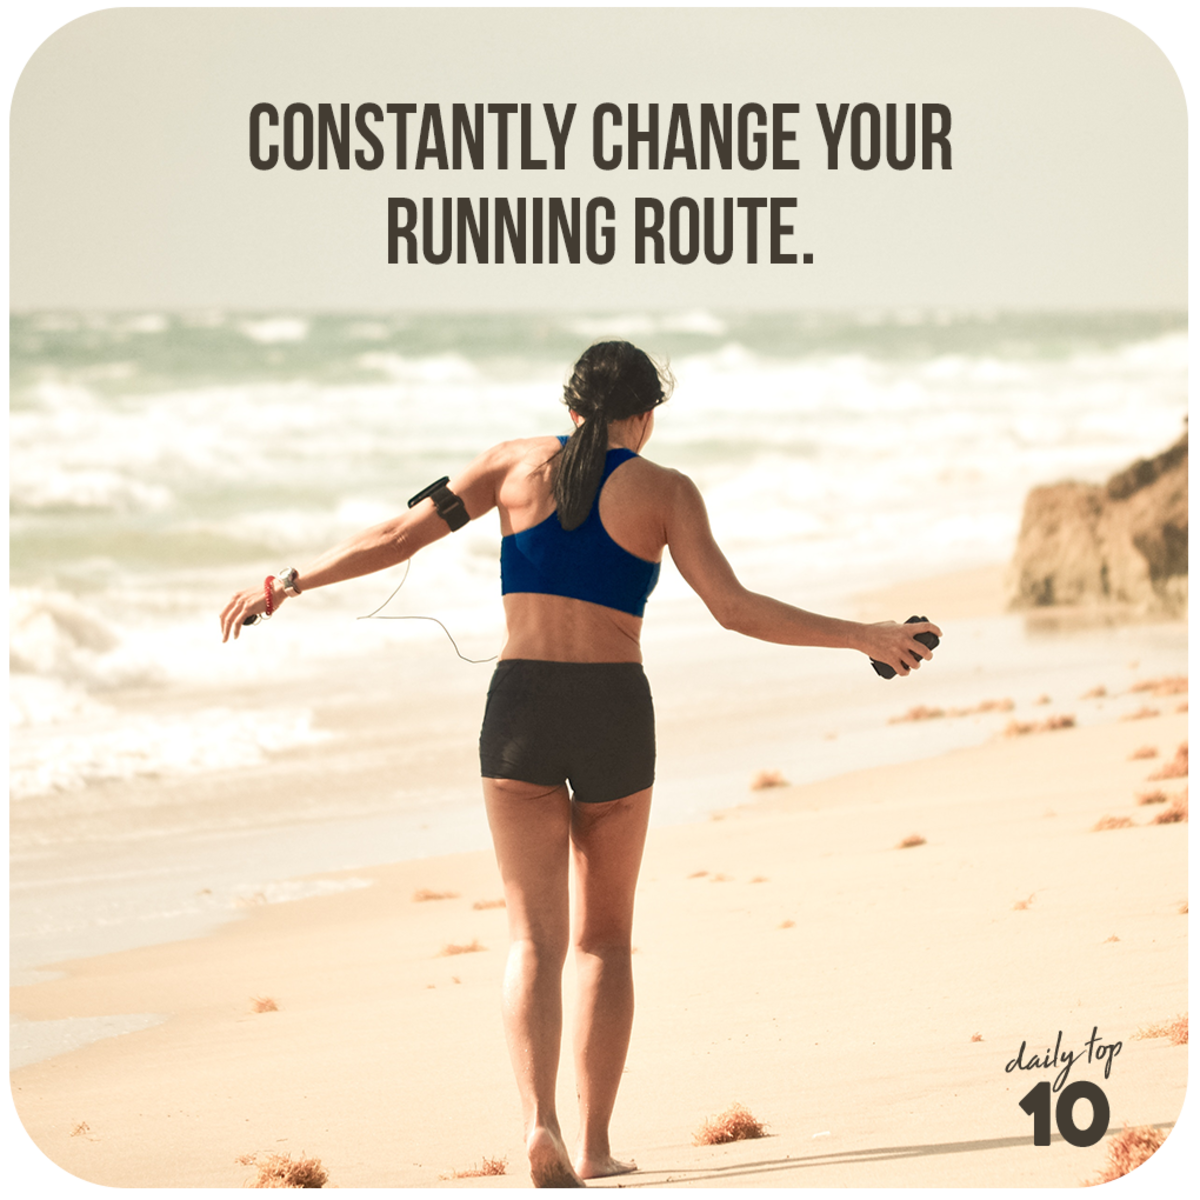 Constantly change your running route.